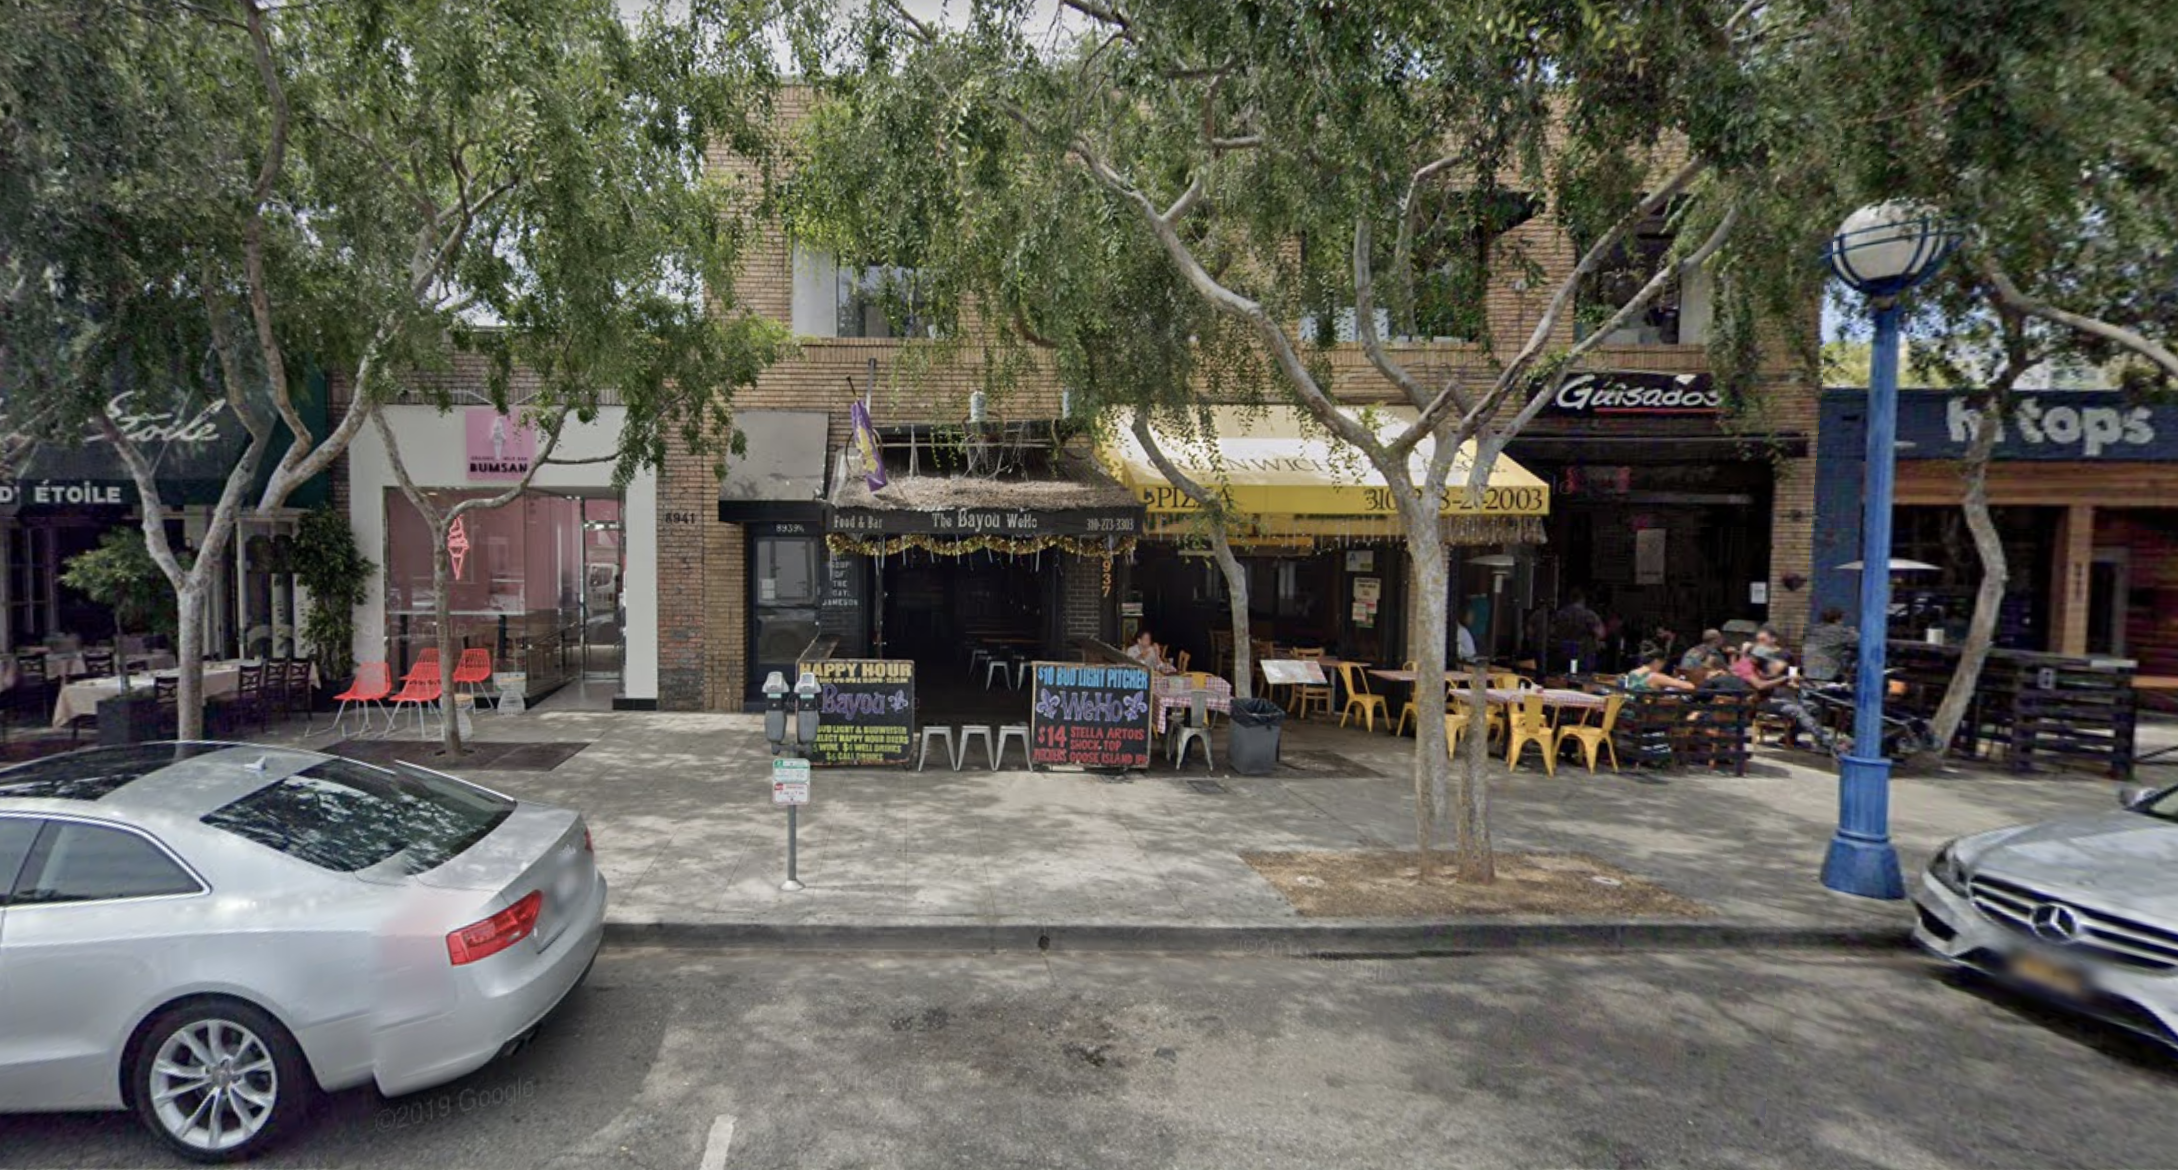 A colorful New Orleans-themed dive bar shown from Google Street View.